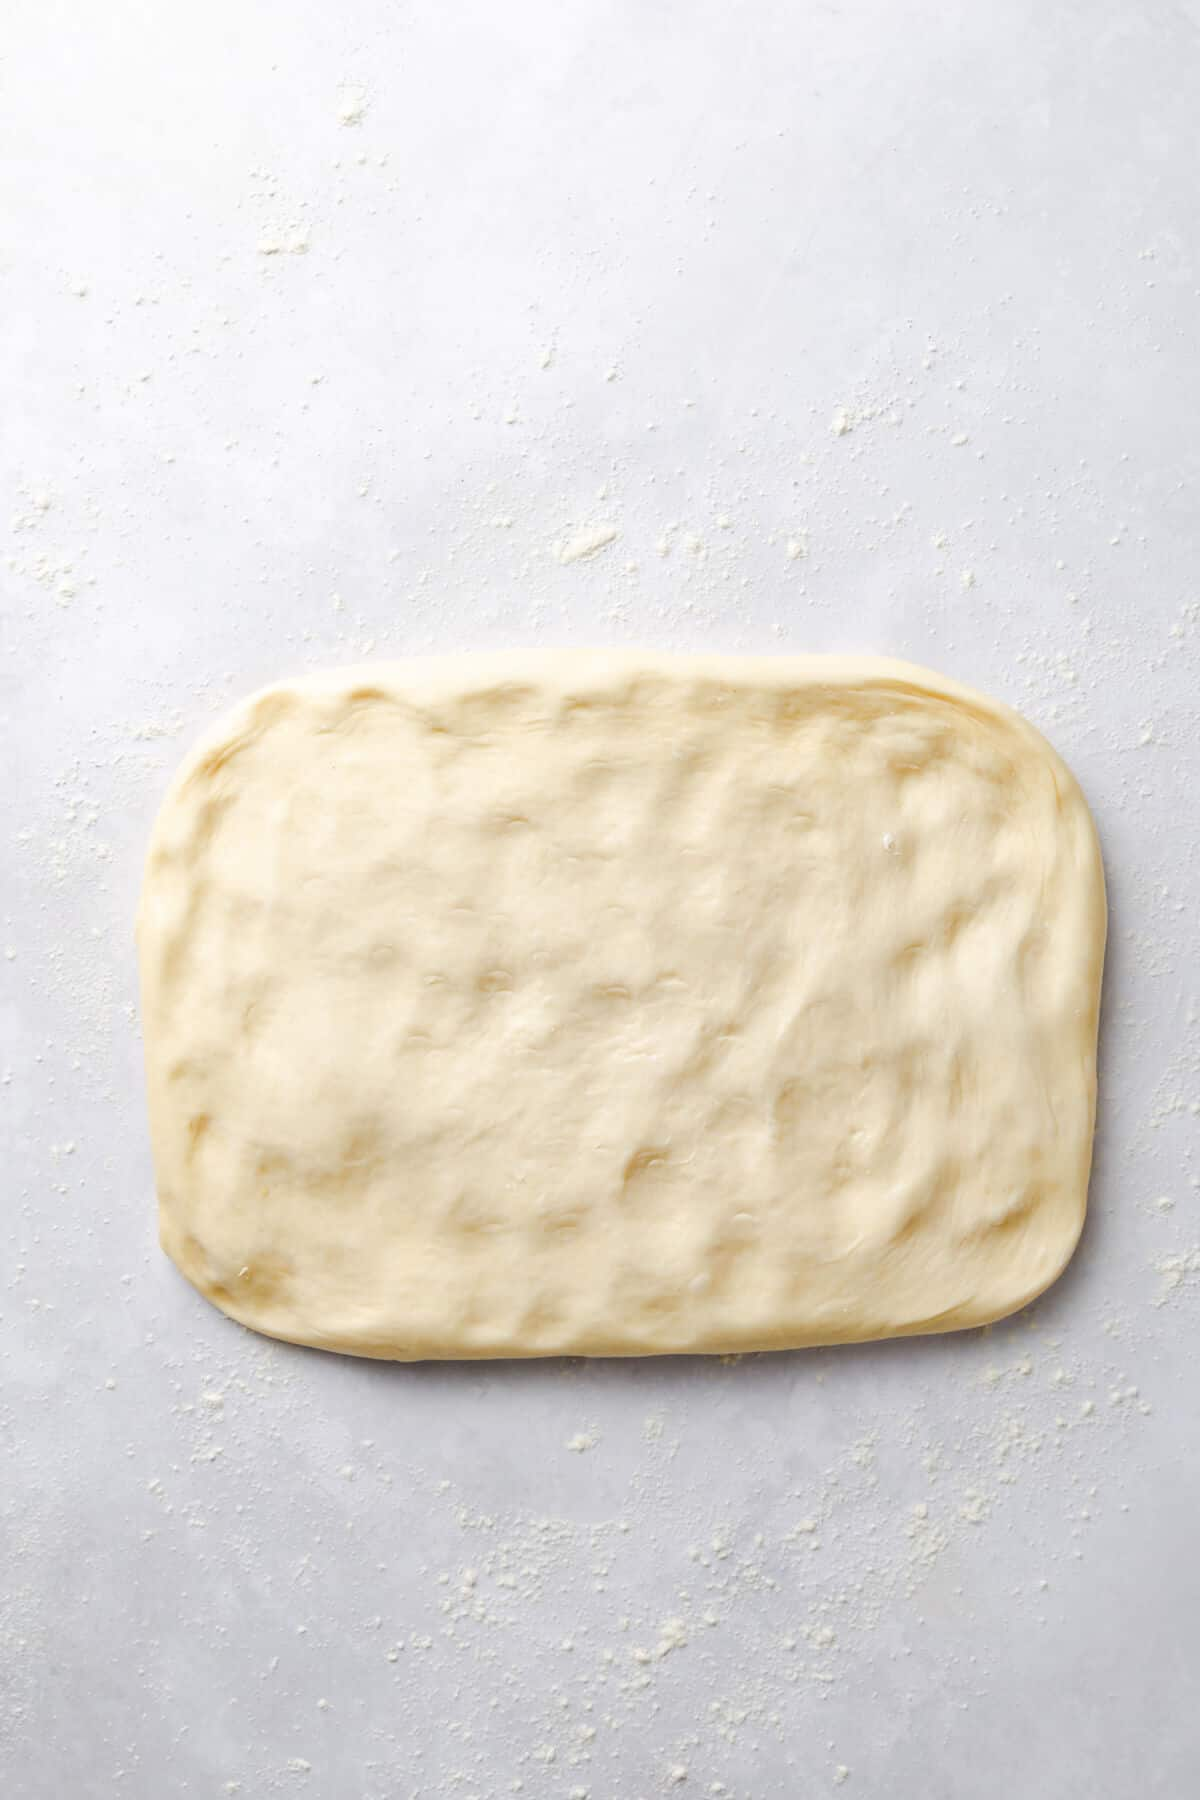 top view of soft dough stretched into rectangle